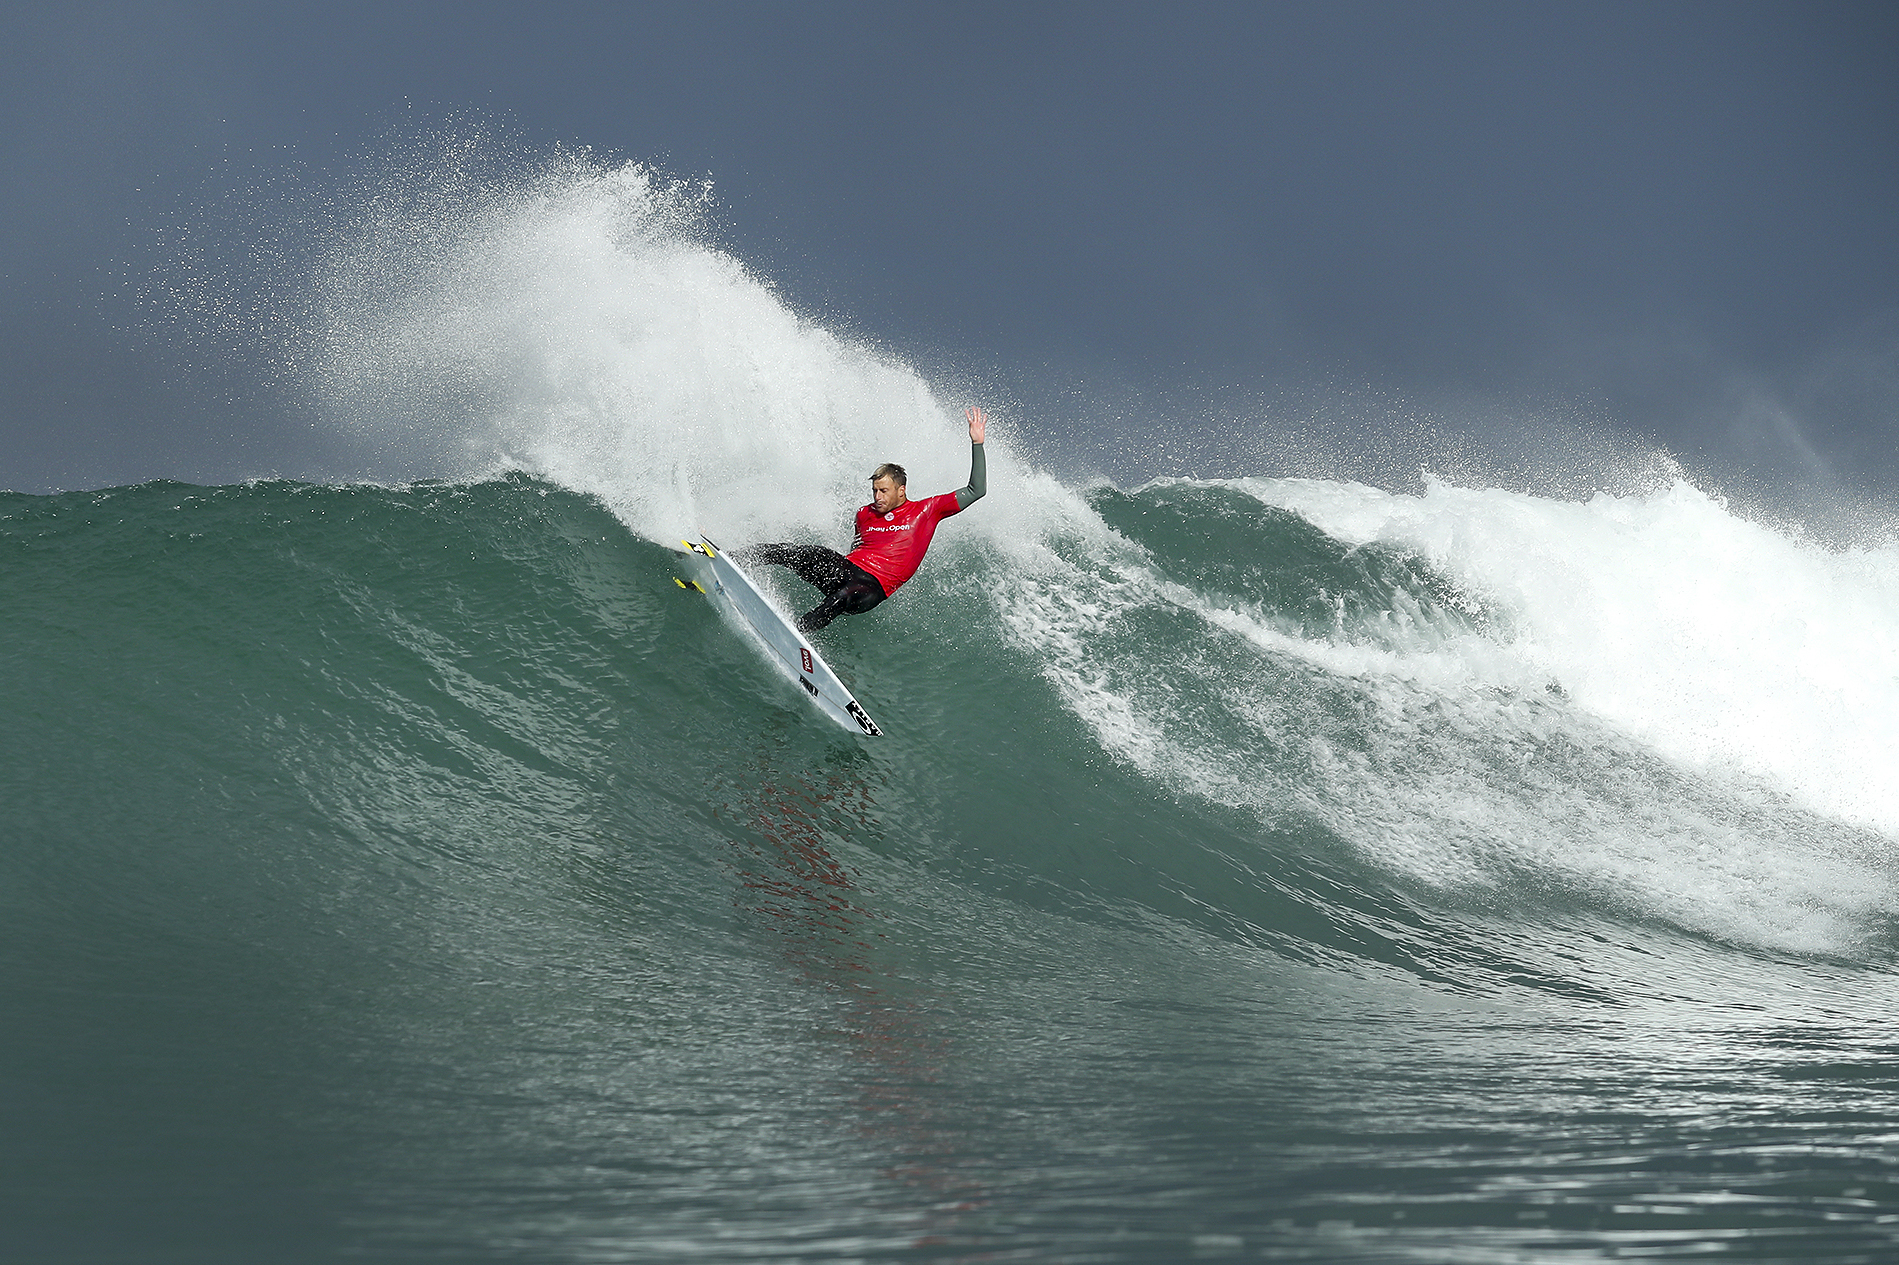 """Sebastian Zietz of Hawaii (pictured) during Round 1 of the JBay Open on Wednesday July 6, 2016. PHOTO: © WSL/ Cestari SOCIAL:@wsl @kc80 This image is provided by the Association of Surfing Professionals LLC (""""World Surf League"""") royalty-free for editorial use only. No commercial rights are granted to the Images in any way. The Images are provided on an """"as is"""" basis and no warranty is provided for use of a particular purpose. Rights to individuals within the Images are not provided. The copyright is owned by World Surf League. Sale or license of the Images is prohibited. ALL RIGHTS RESERVED."""